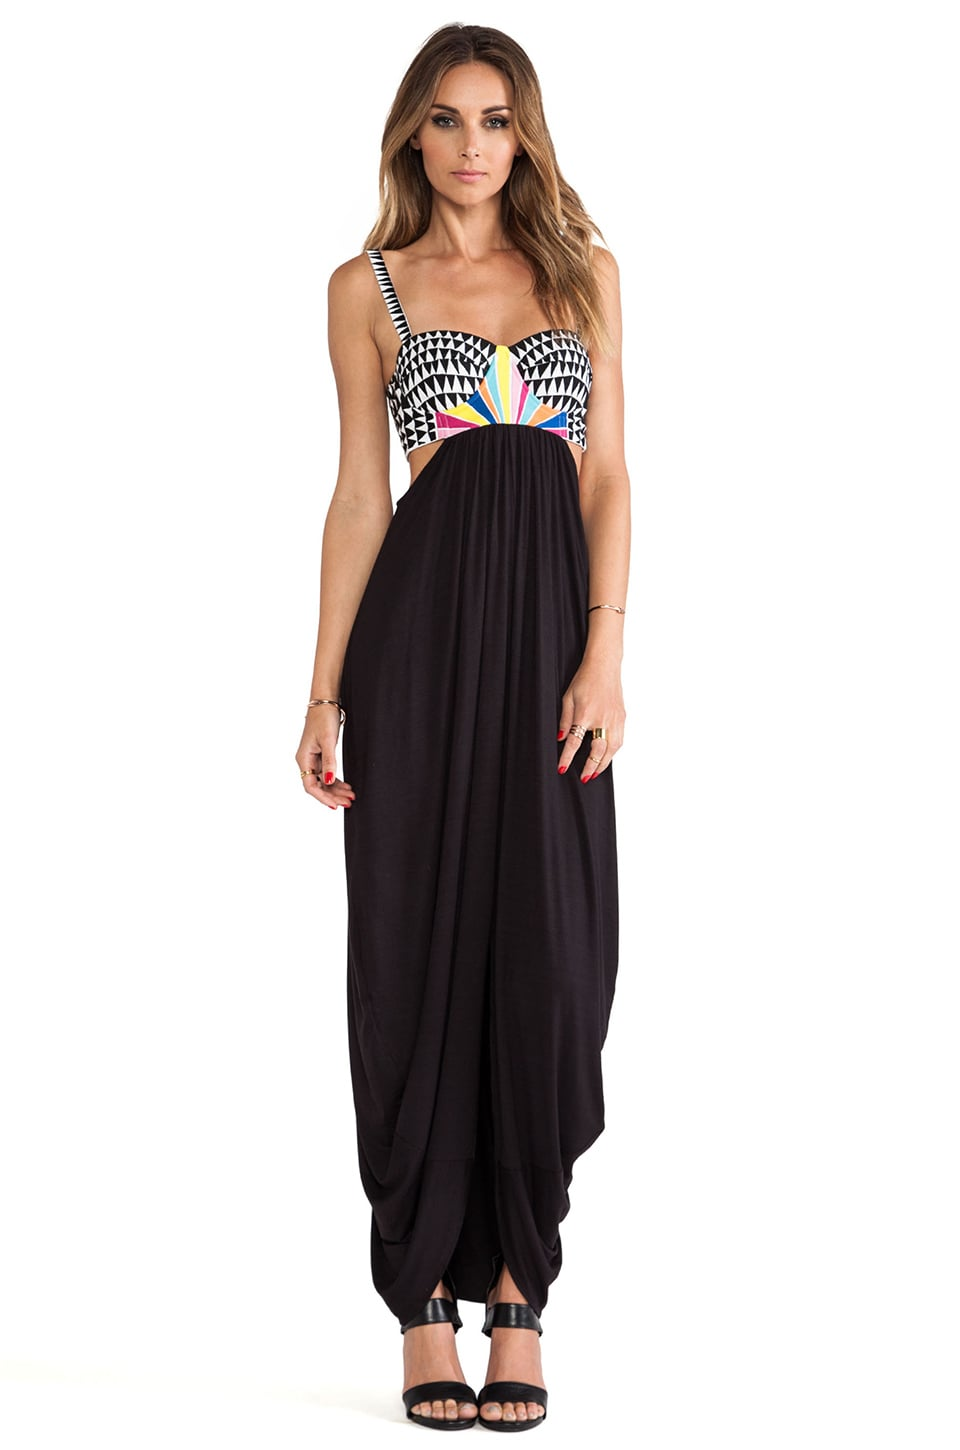 Mara Hoffman Embroidered Bustier Dress in Black